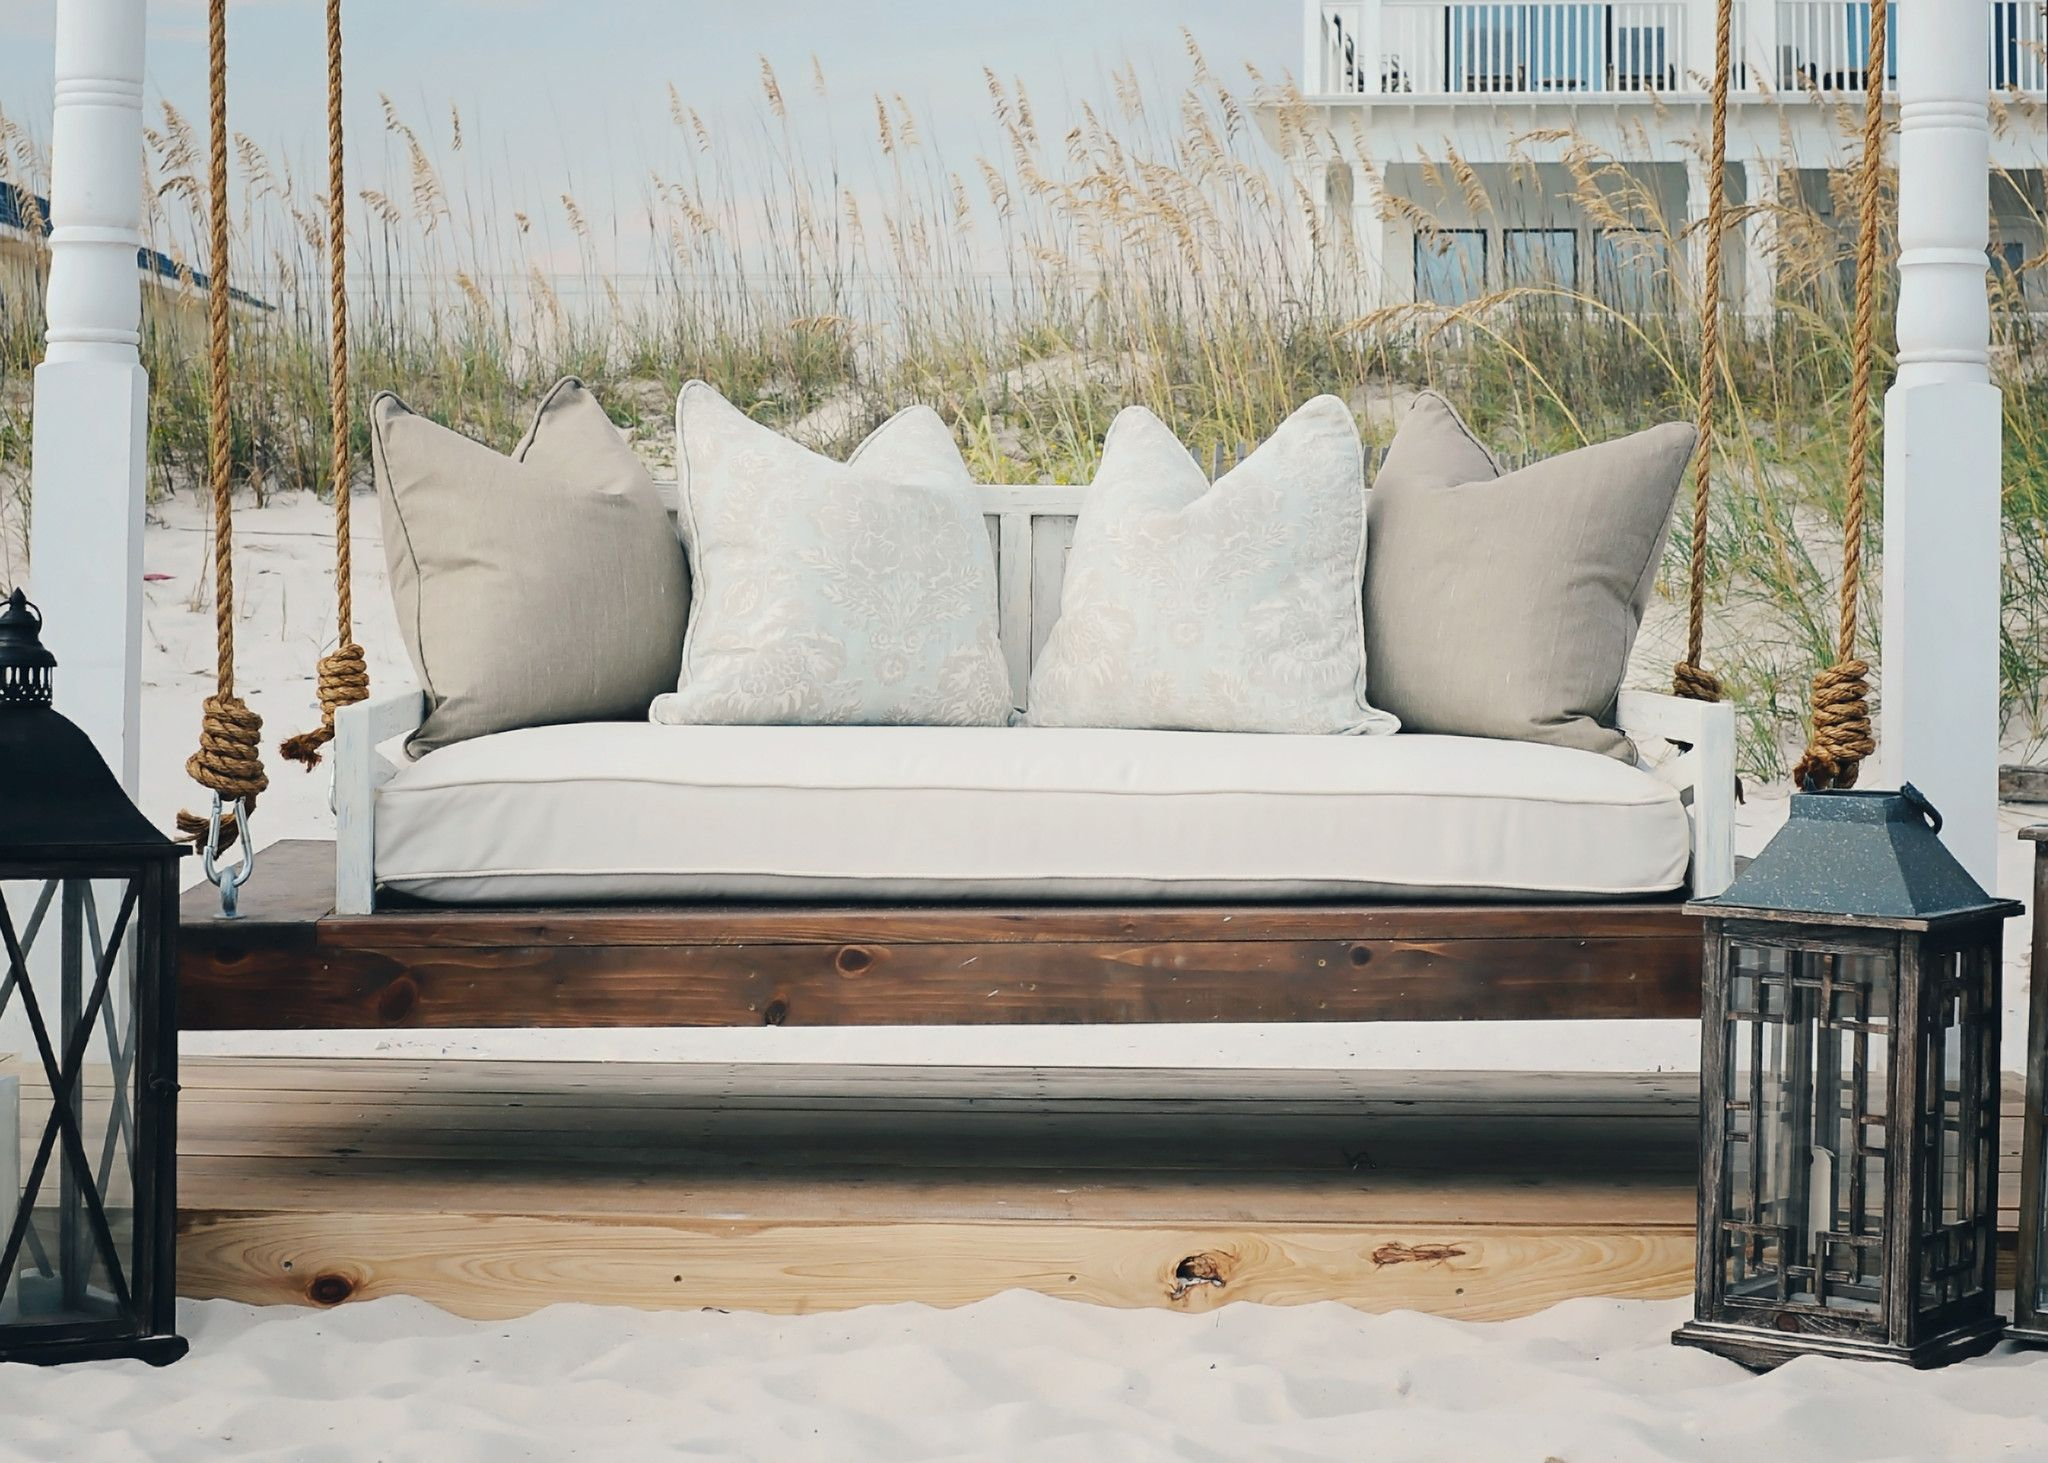 Porch Swing Bed Porch Swings For Your Comfy Outdoor Furniture Ideas Porch Swing